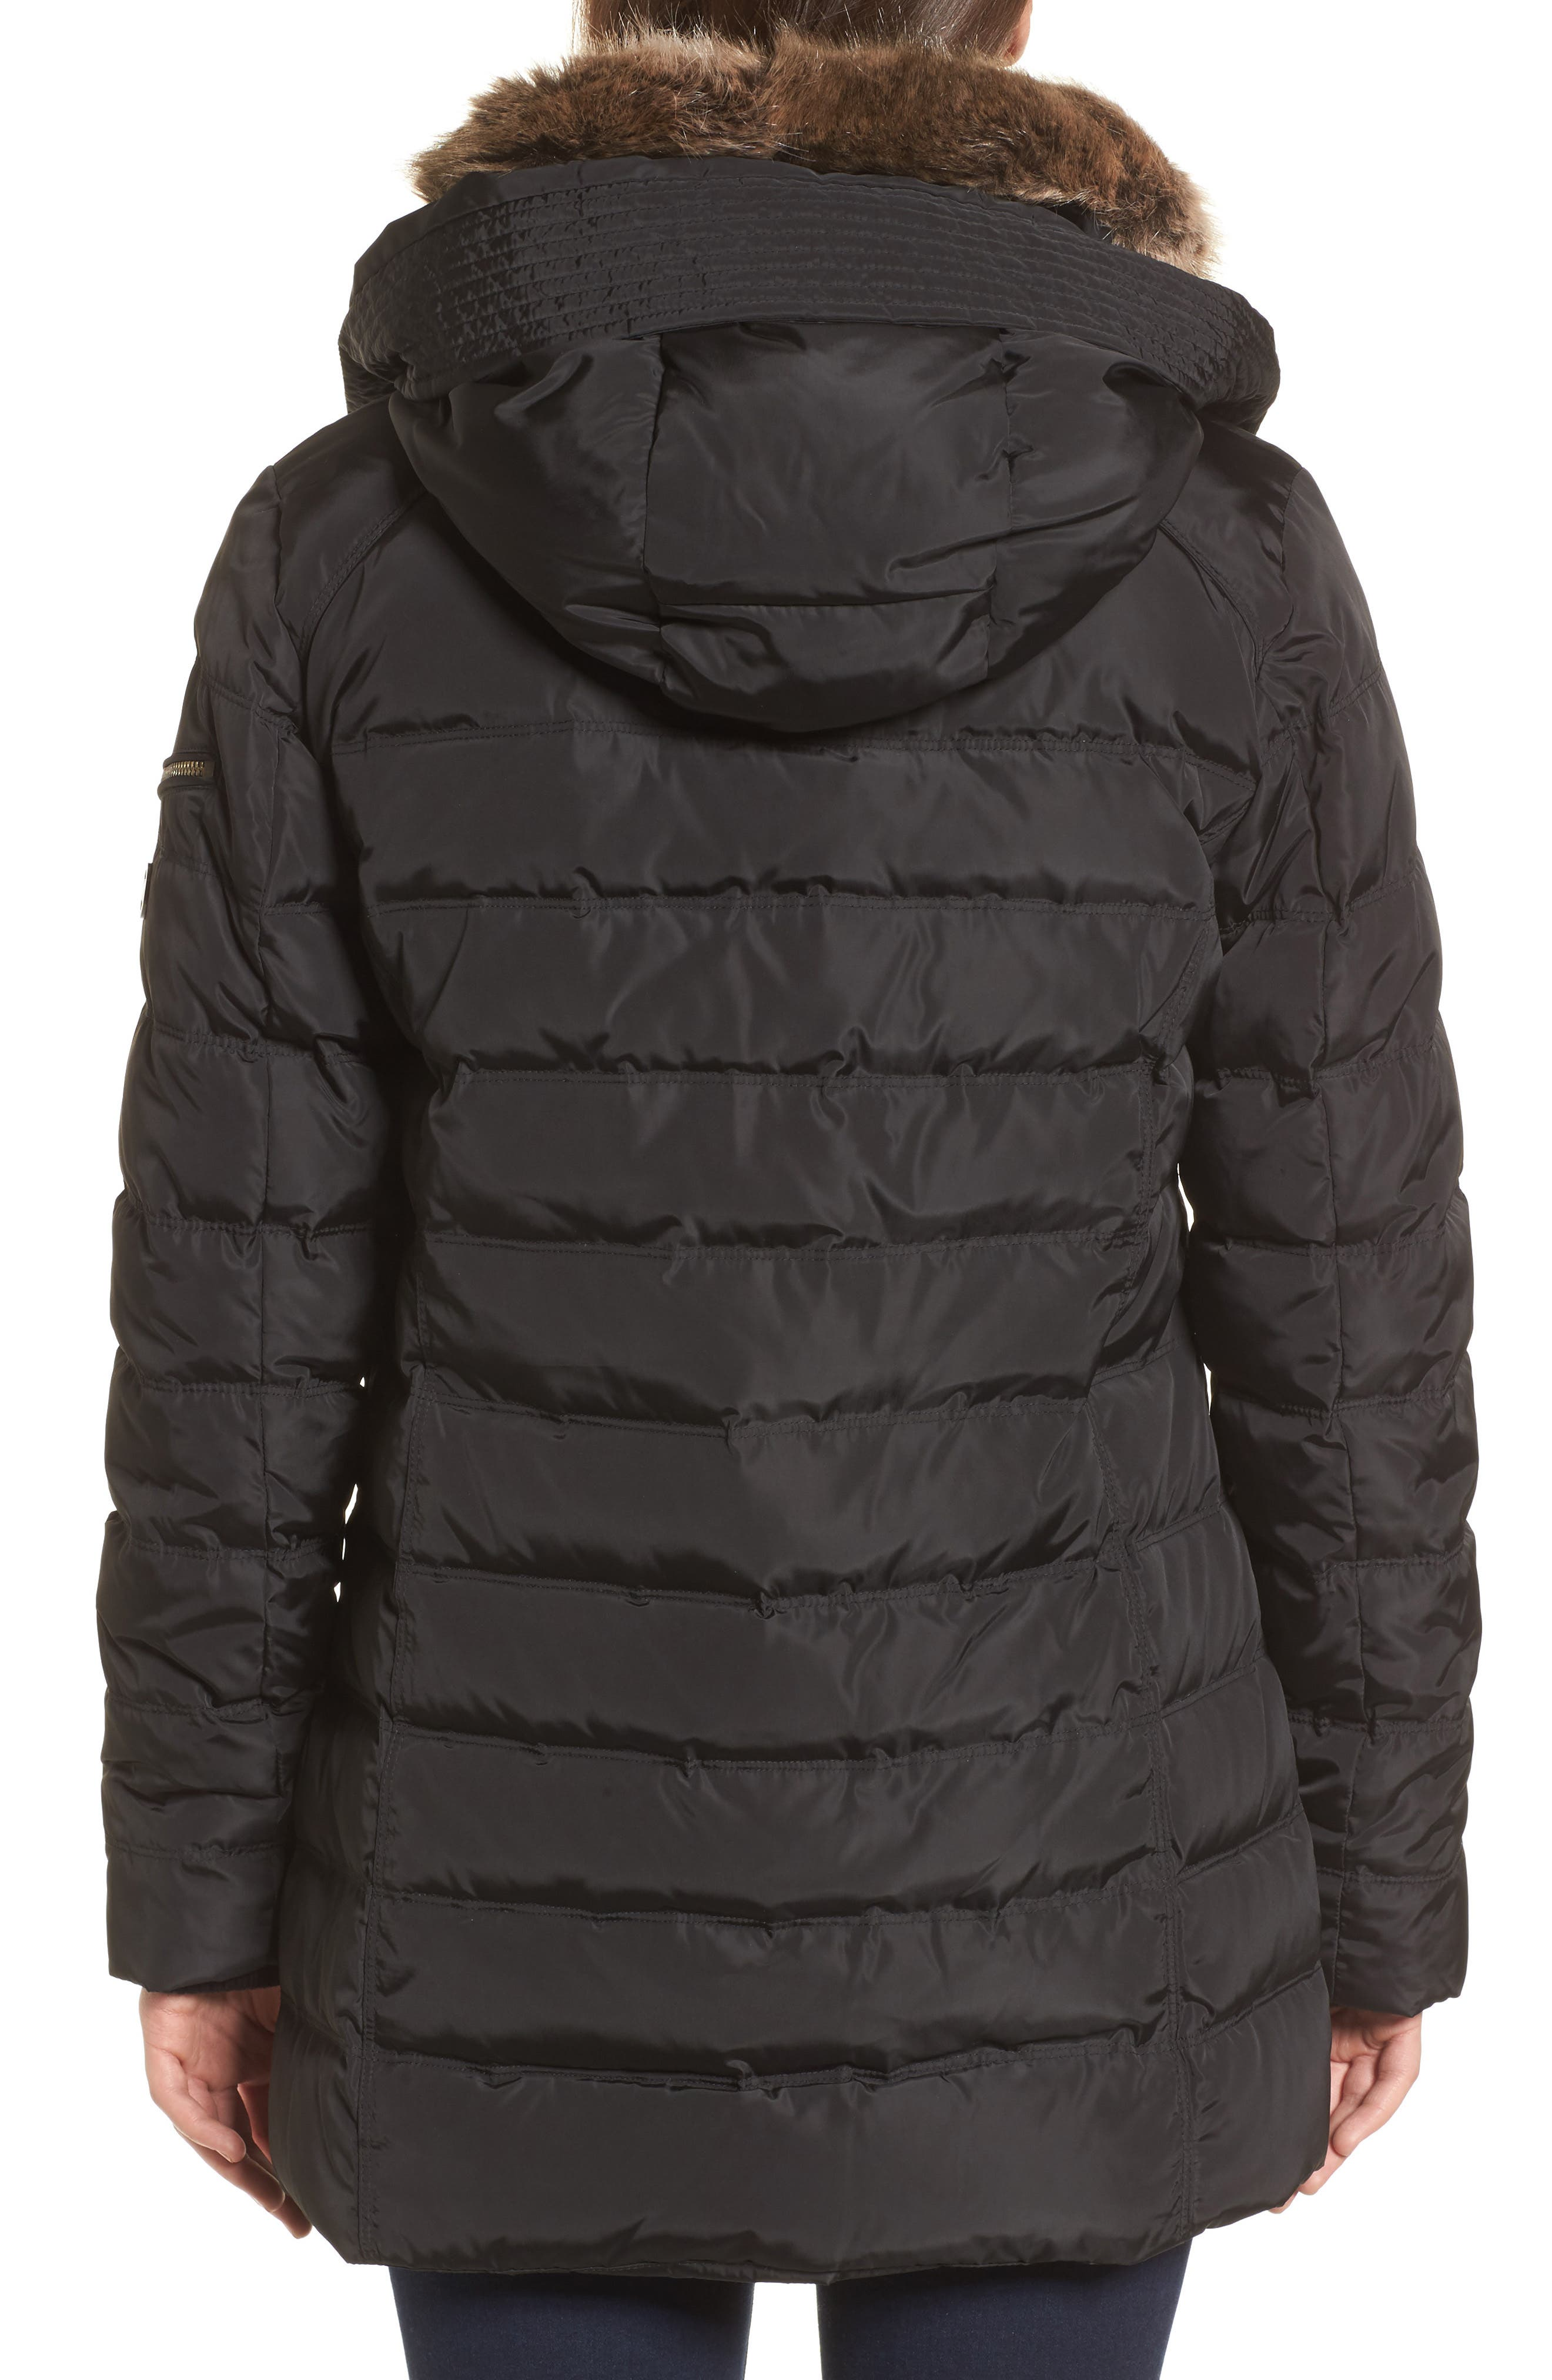 Hooded Coat with Faux Fur Trim,                             Alternate thumbnail 2, color,                             001